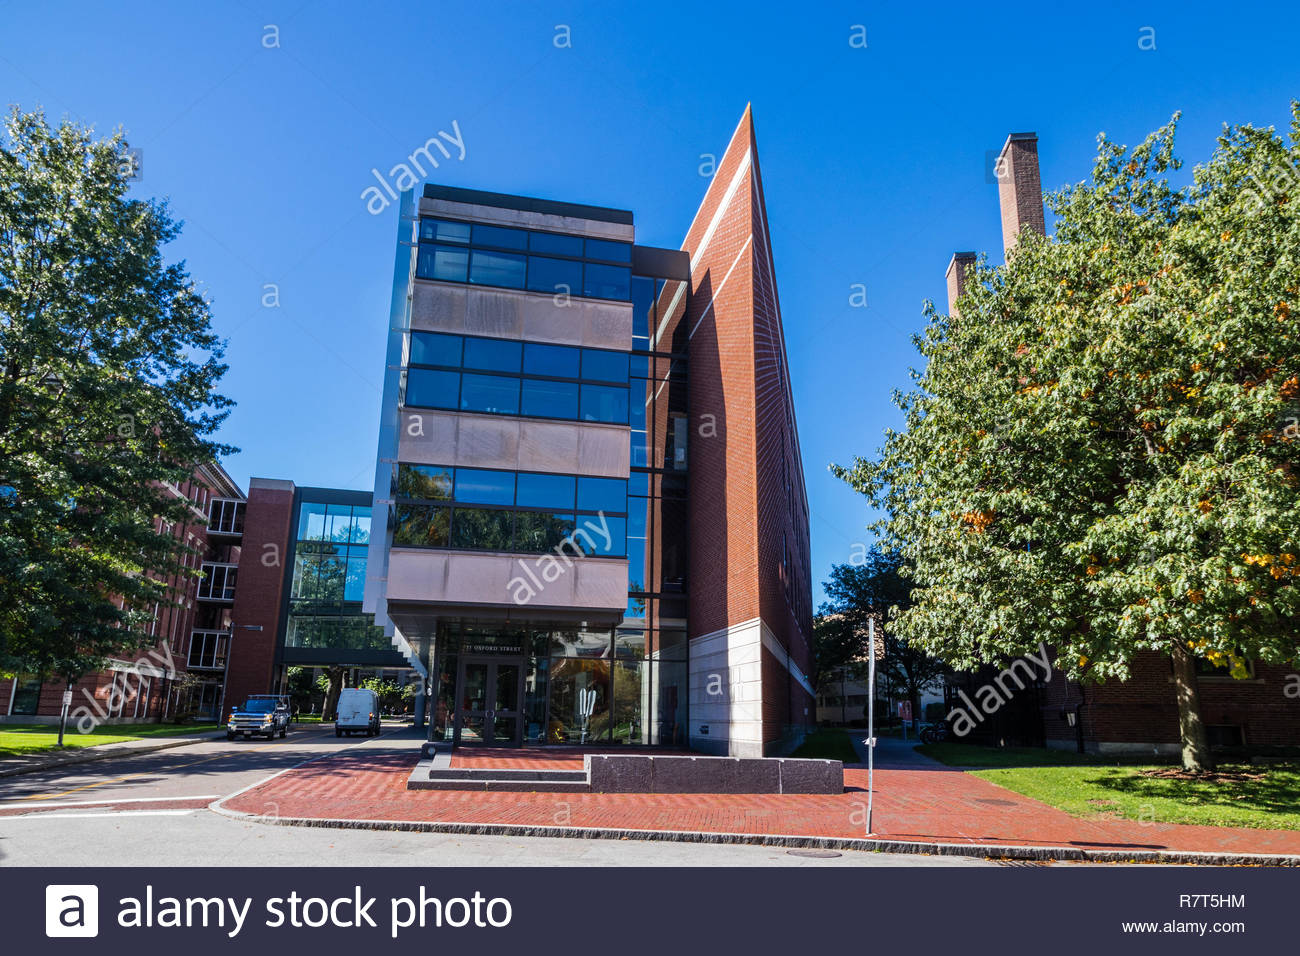 Tradition with modernity in academia - Stock Image